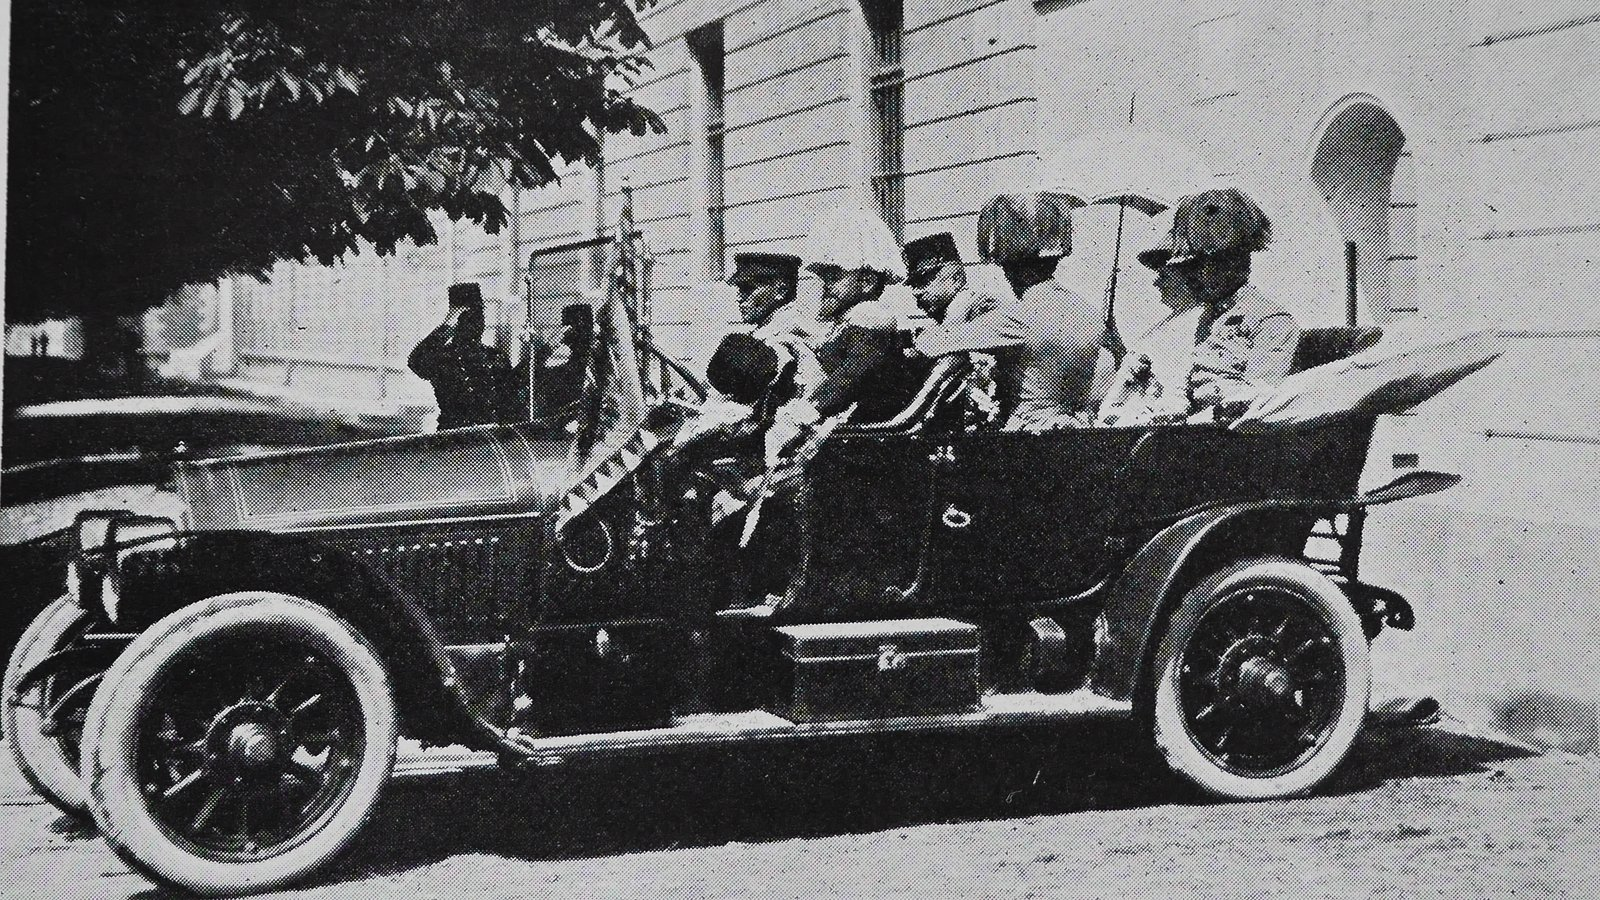 In Pictures: The Assassination of Franz Ferdinand